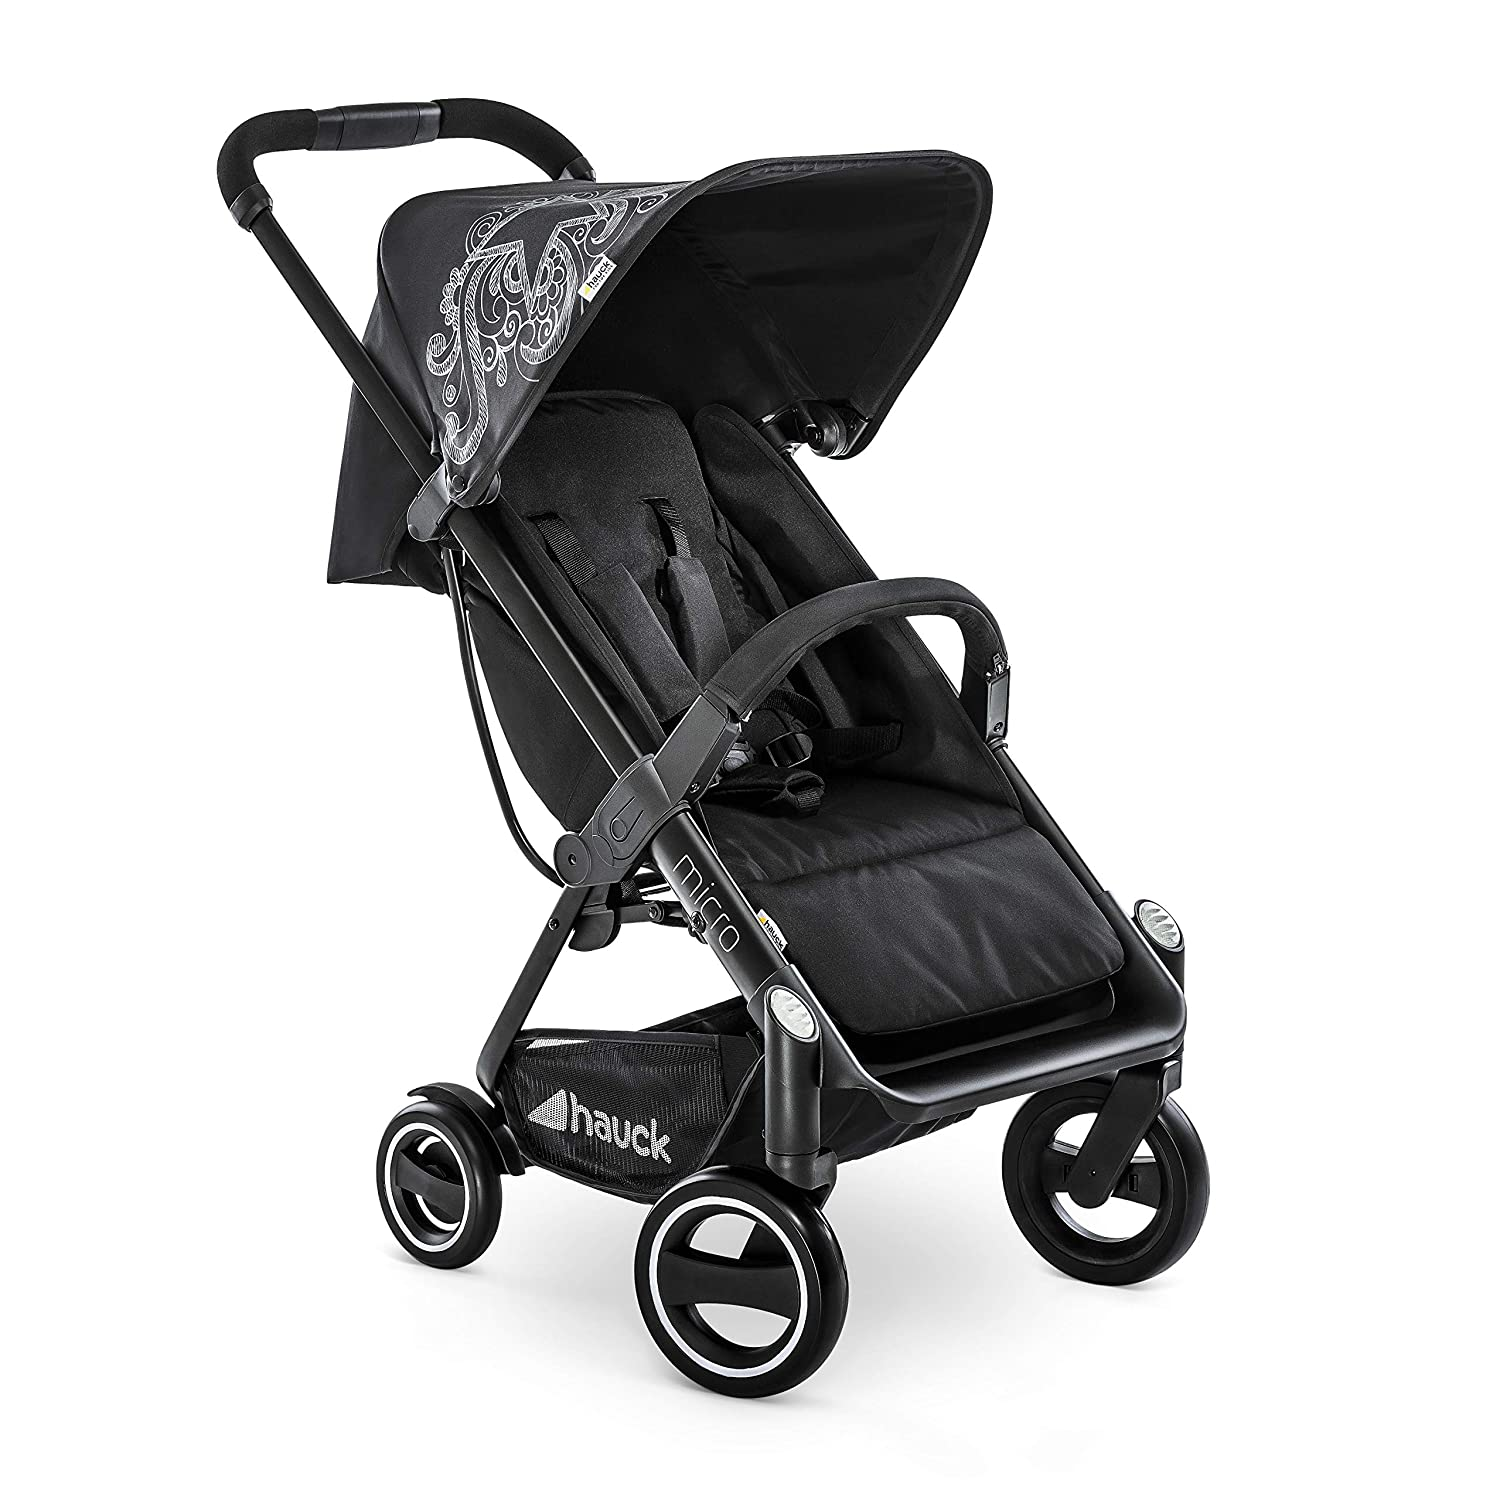 Hauck Micro, Compact Stroller Foldable with one Hand, Extra Light and Extra Small, from 6 Month up to 55 lbs